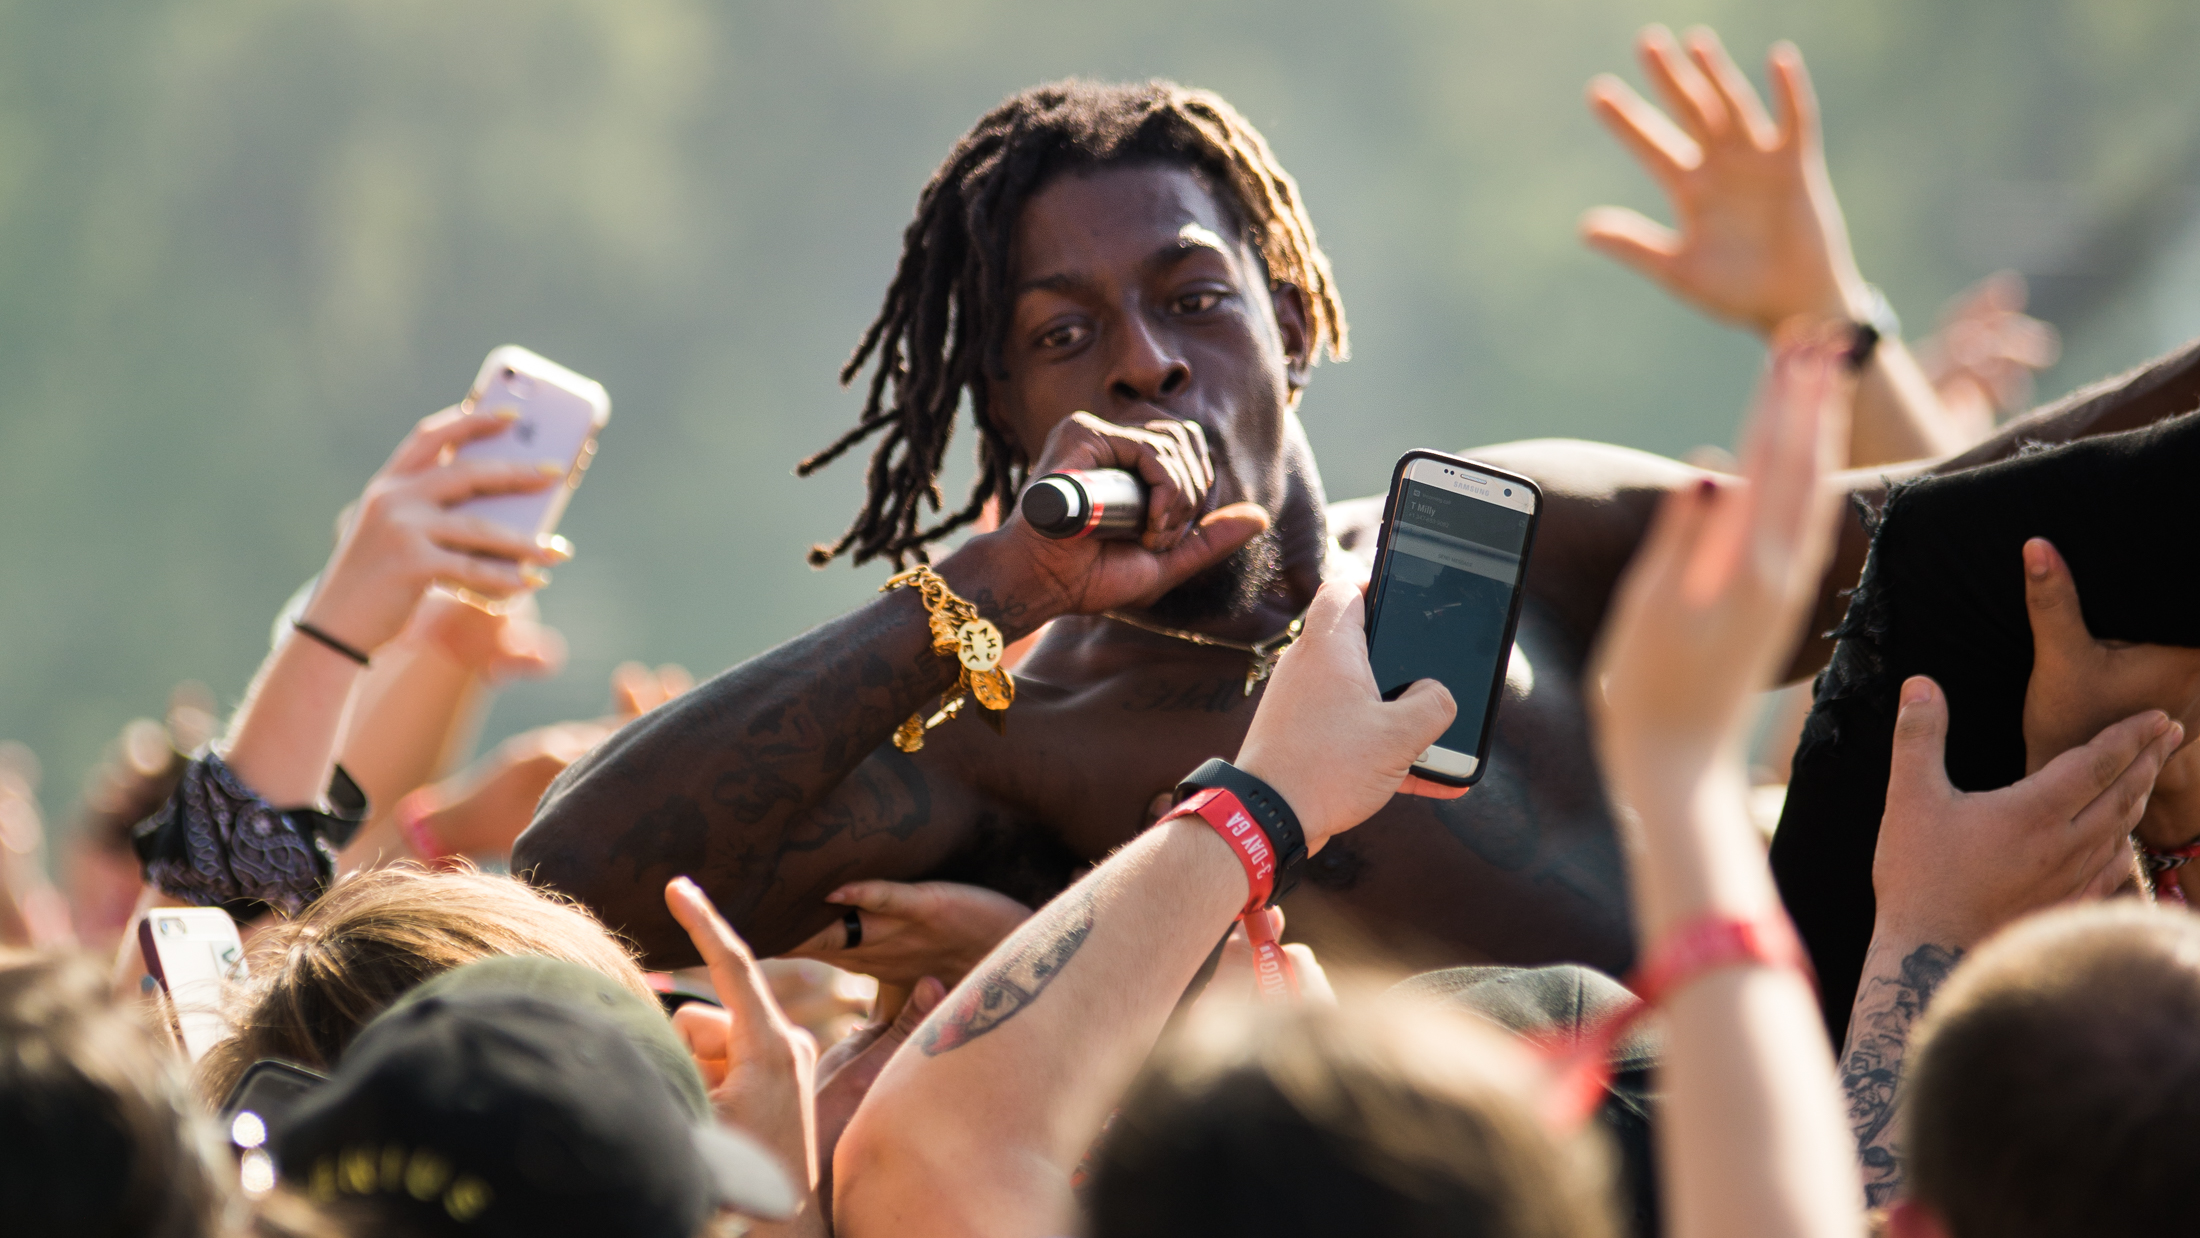 Meechy Darko of Flatbush Zombies crowd surfs and raps during his set on day two of The Meadows Music and Art Festival at Citi Field on Sat. Sept. 16, 2017. (Amar Batra/The Daily Campus)